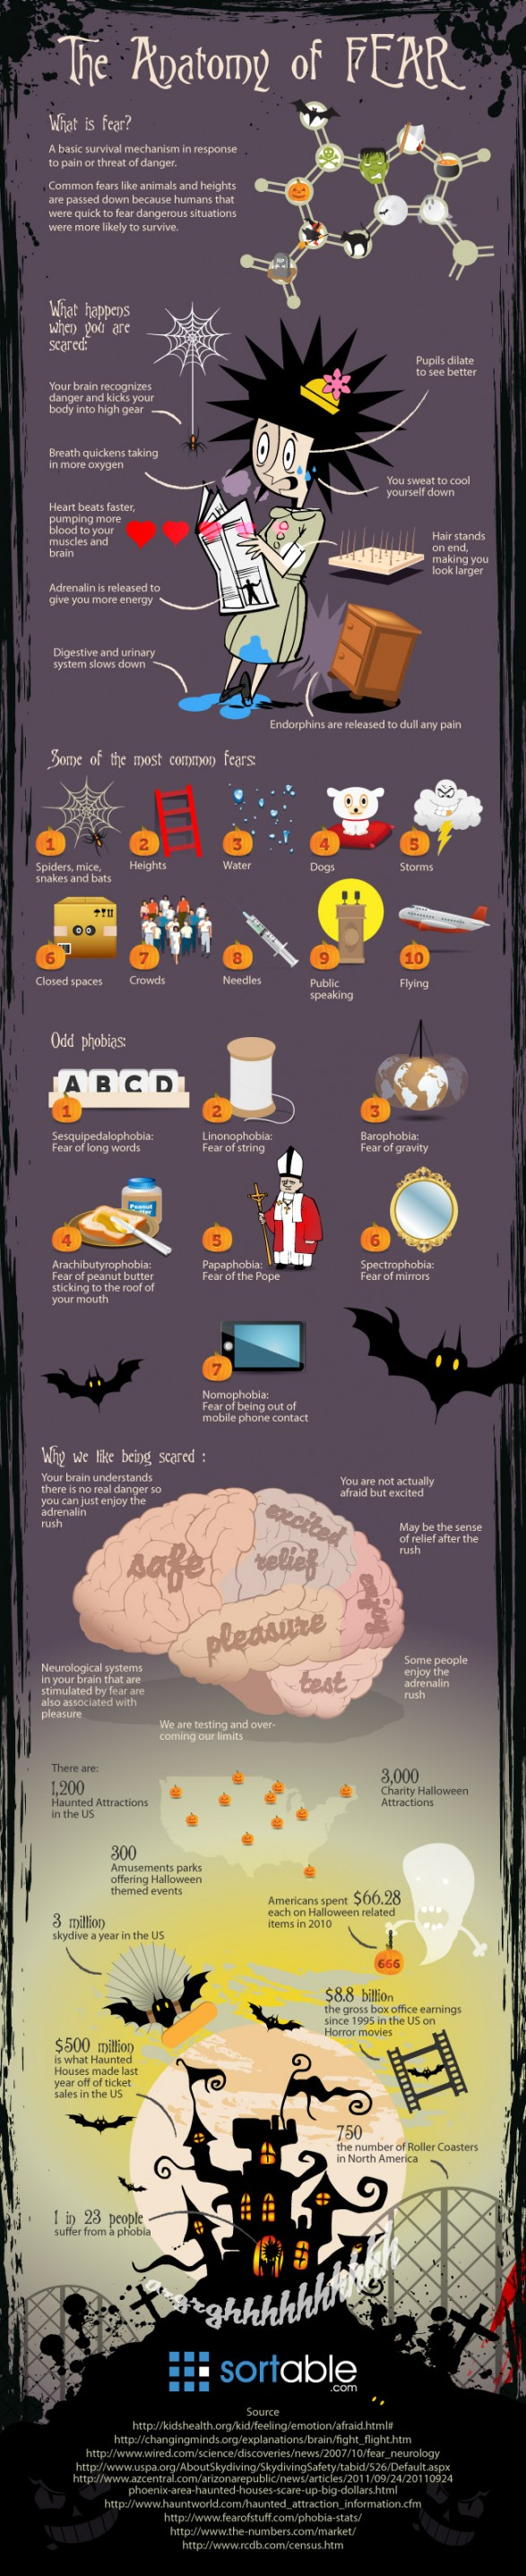 Humans more fit to fear dangerous situations survived more, therefore as a survival mechanism we've learned to have fears. This infographic shows what happens in our brains when we have fears and what people's most common fears are.